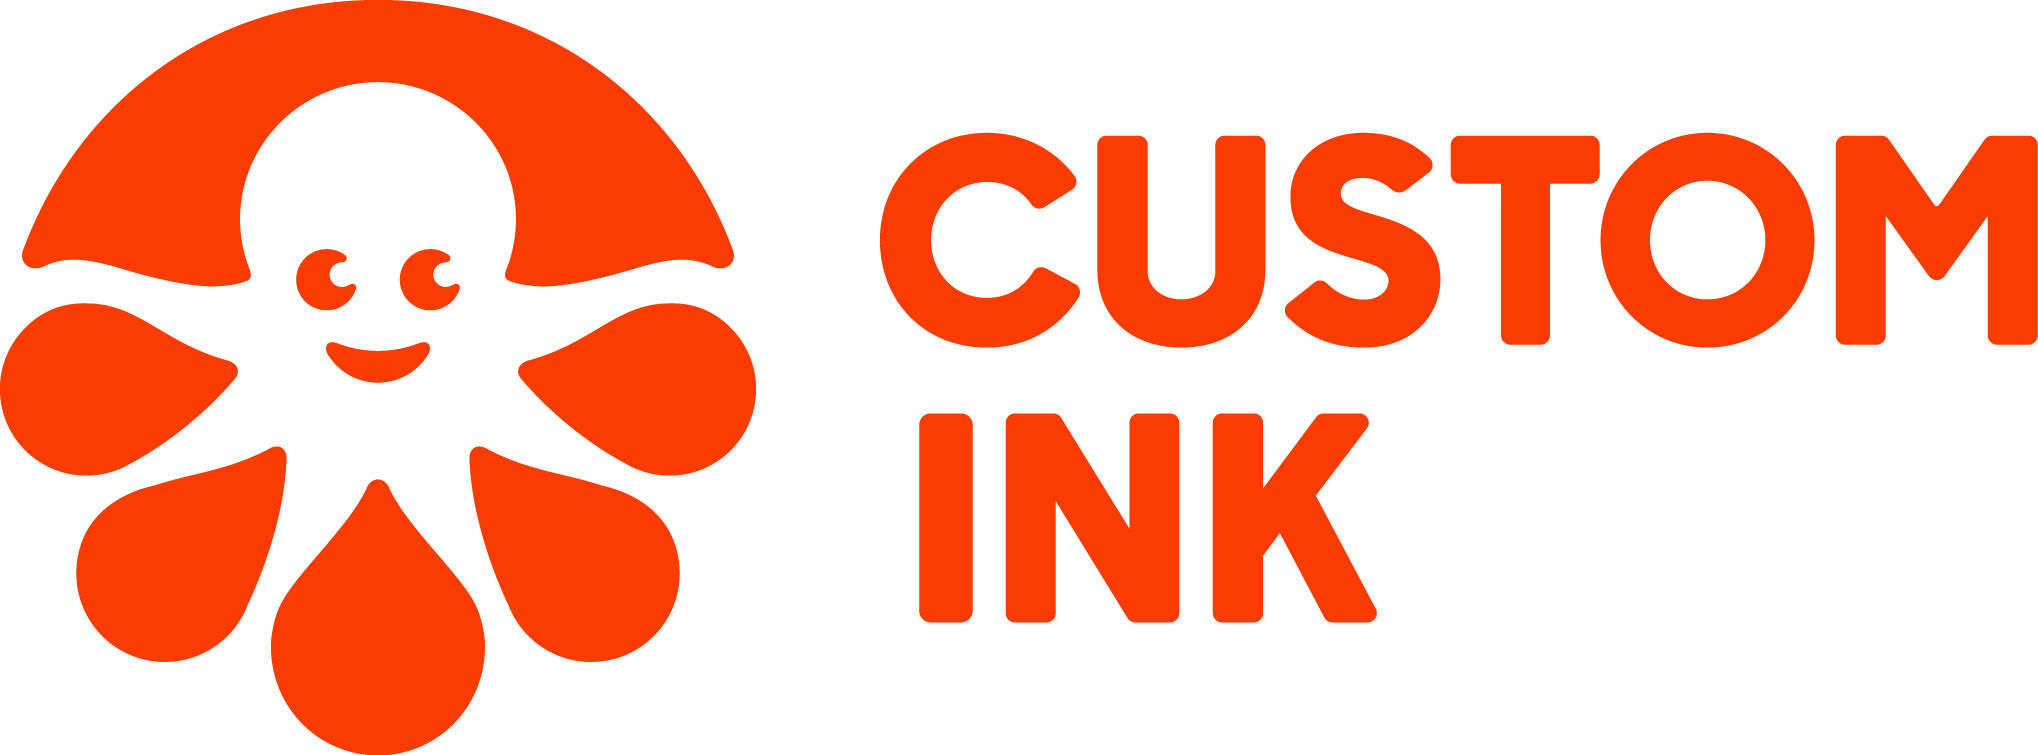 custom ink logo